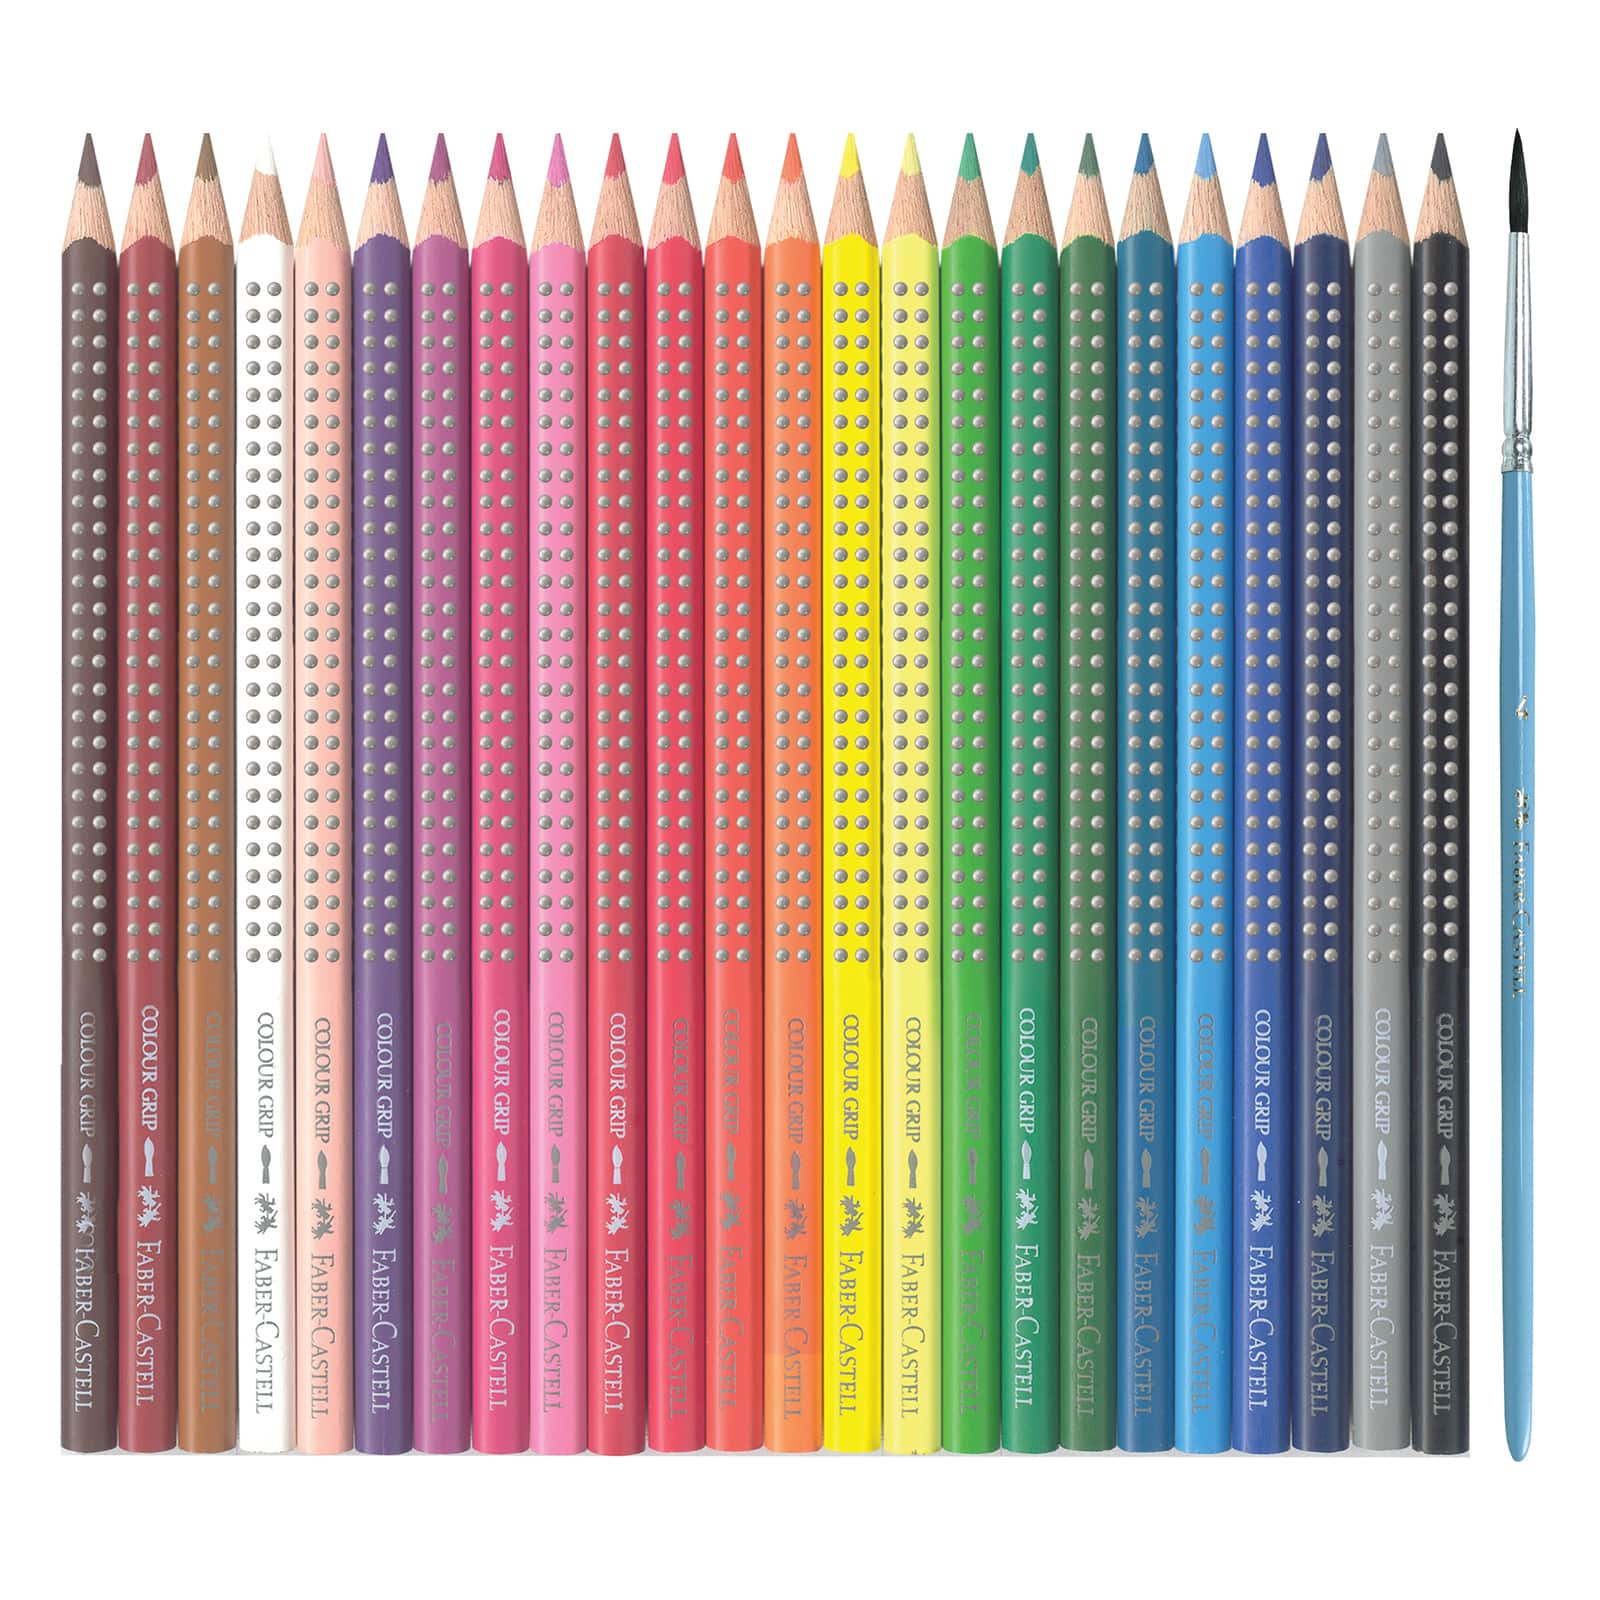 FABER-CASTELL AQUARELLE STICKS USE WITH WATER MANY COLOURS BUY 2 GET 1 FREE